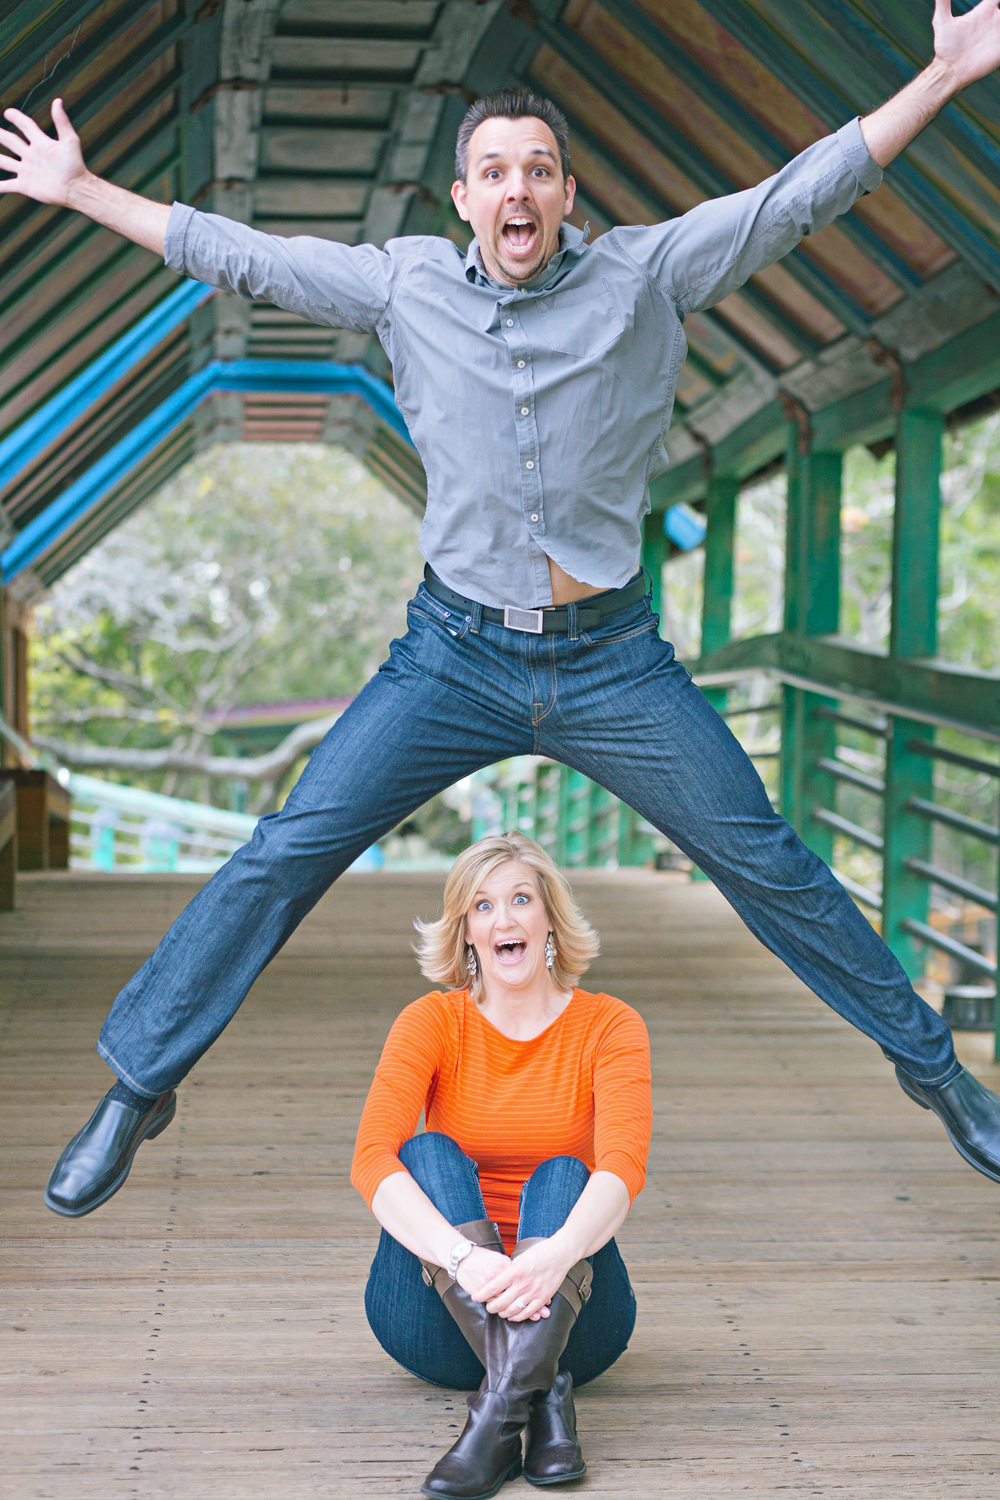 Bryner Engagement Shoot Tampa Lowry Park Zoo-139678.jpg